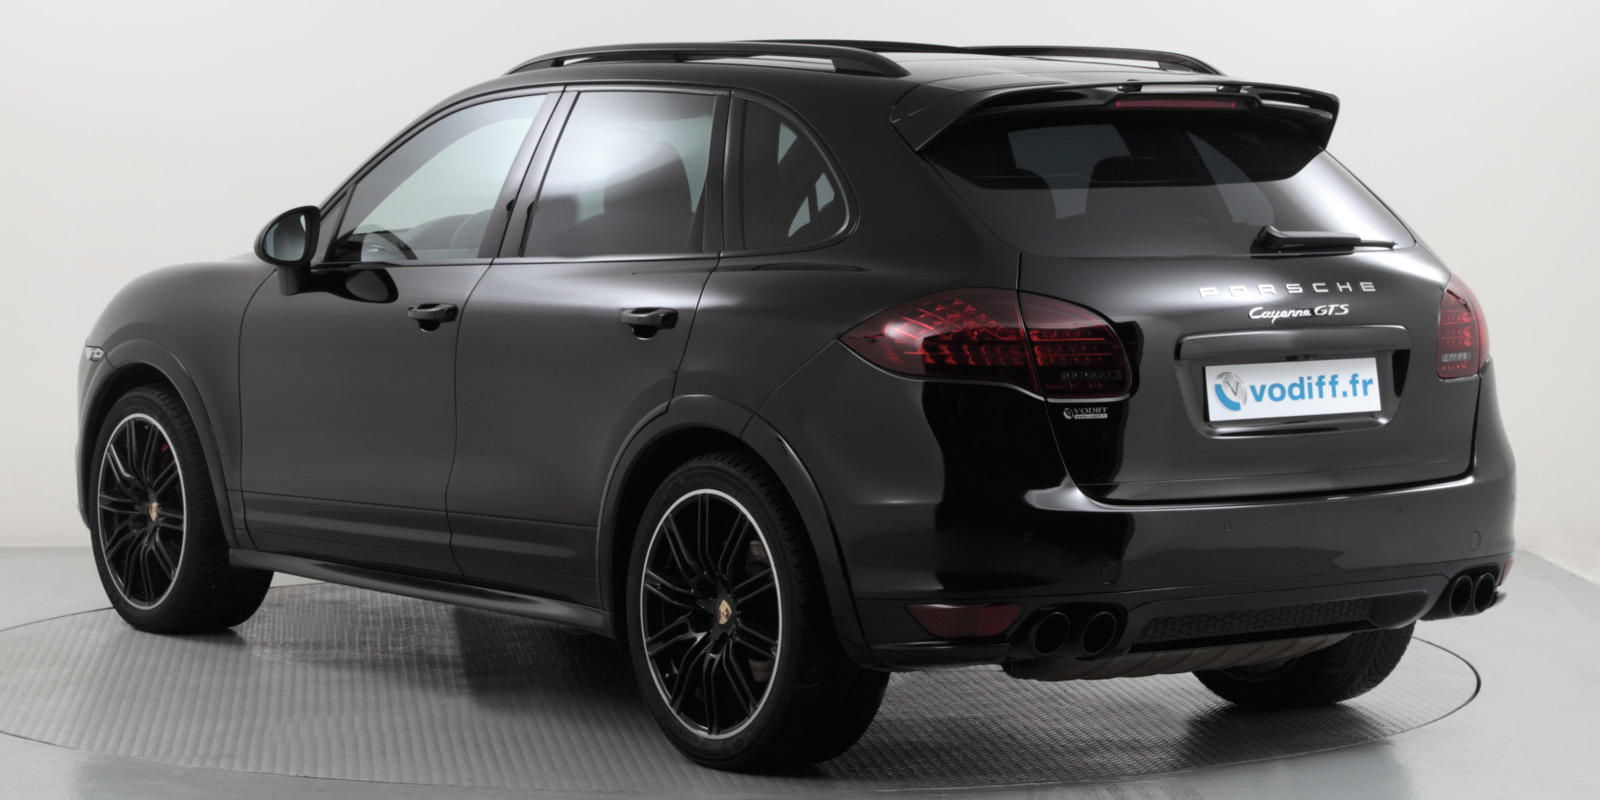 porsche cayenne gts 420 cv tiptronic mod 2013 neuf 123 000 euros ecotaxe pay e occasion. Black Bedroom Furniture Sets. Home Design Ideas